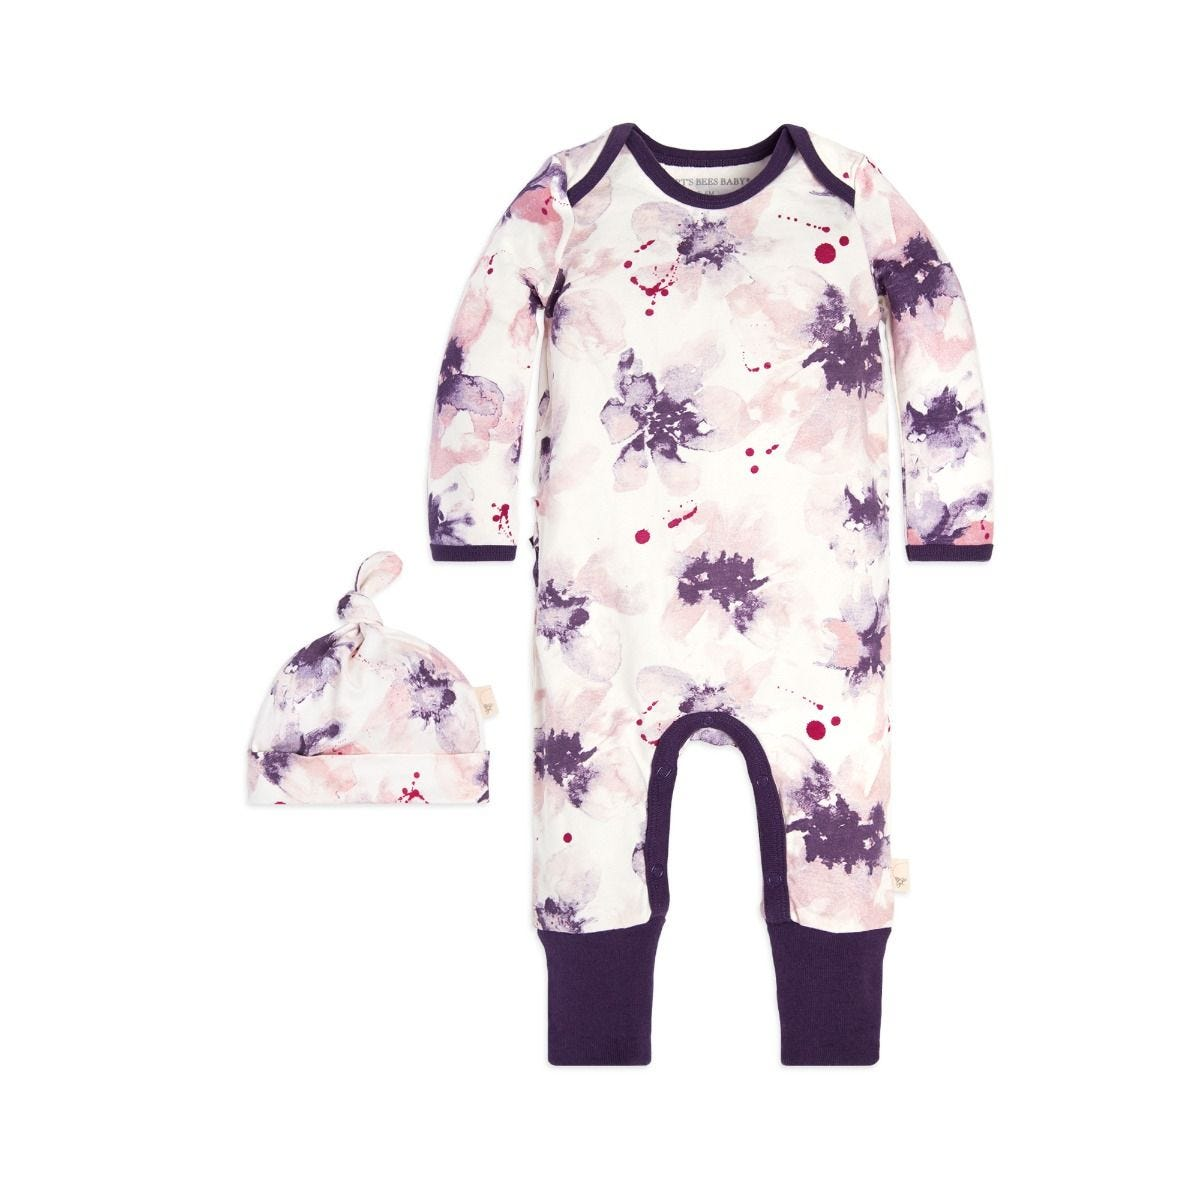 95de423c8 Exploded Petals Ruffle Organic Baby One Piece Jumpsuit & Hat Set